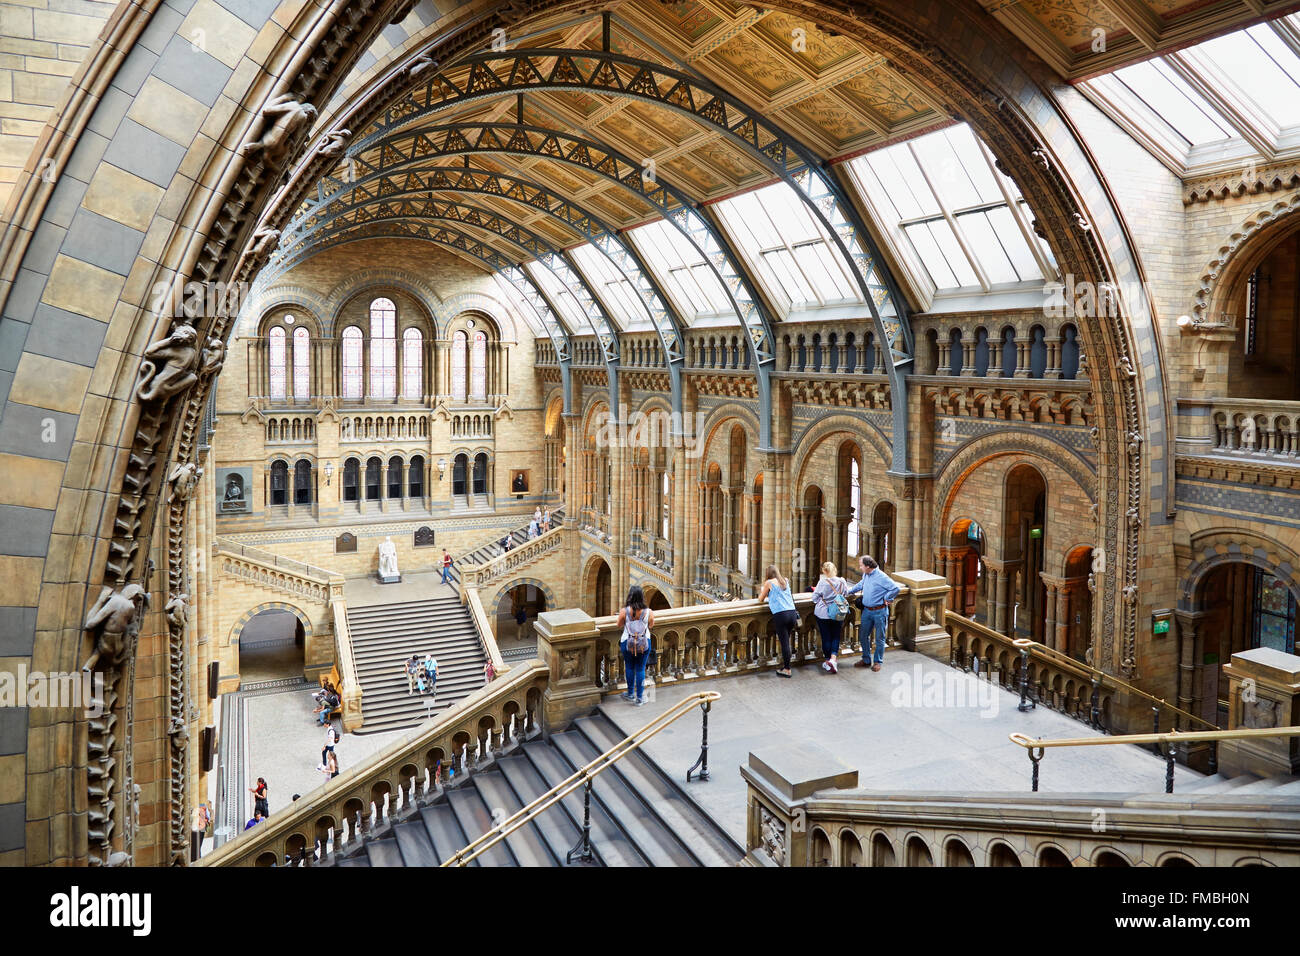 Natural History Museum interior arcade with people and tourists in London - Stock Image